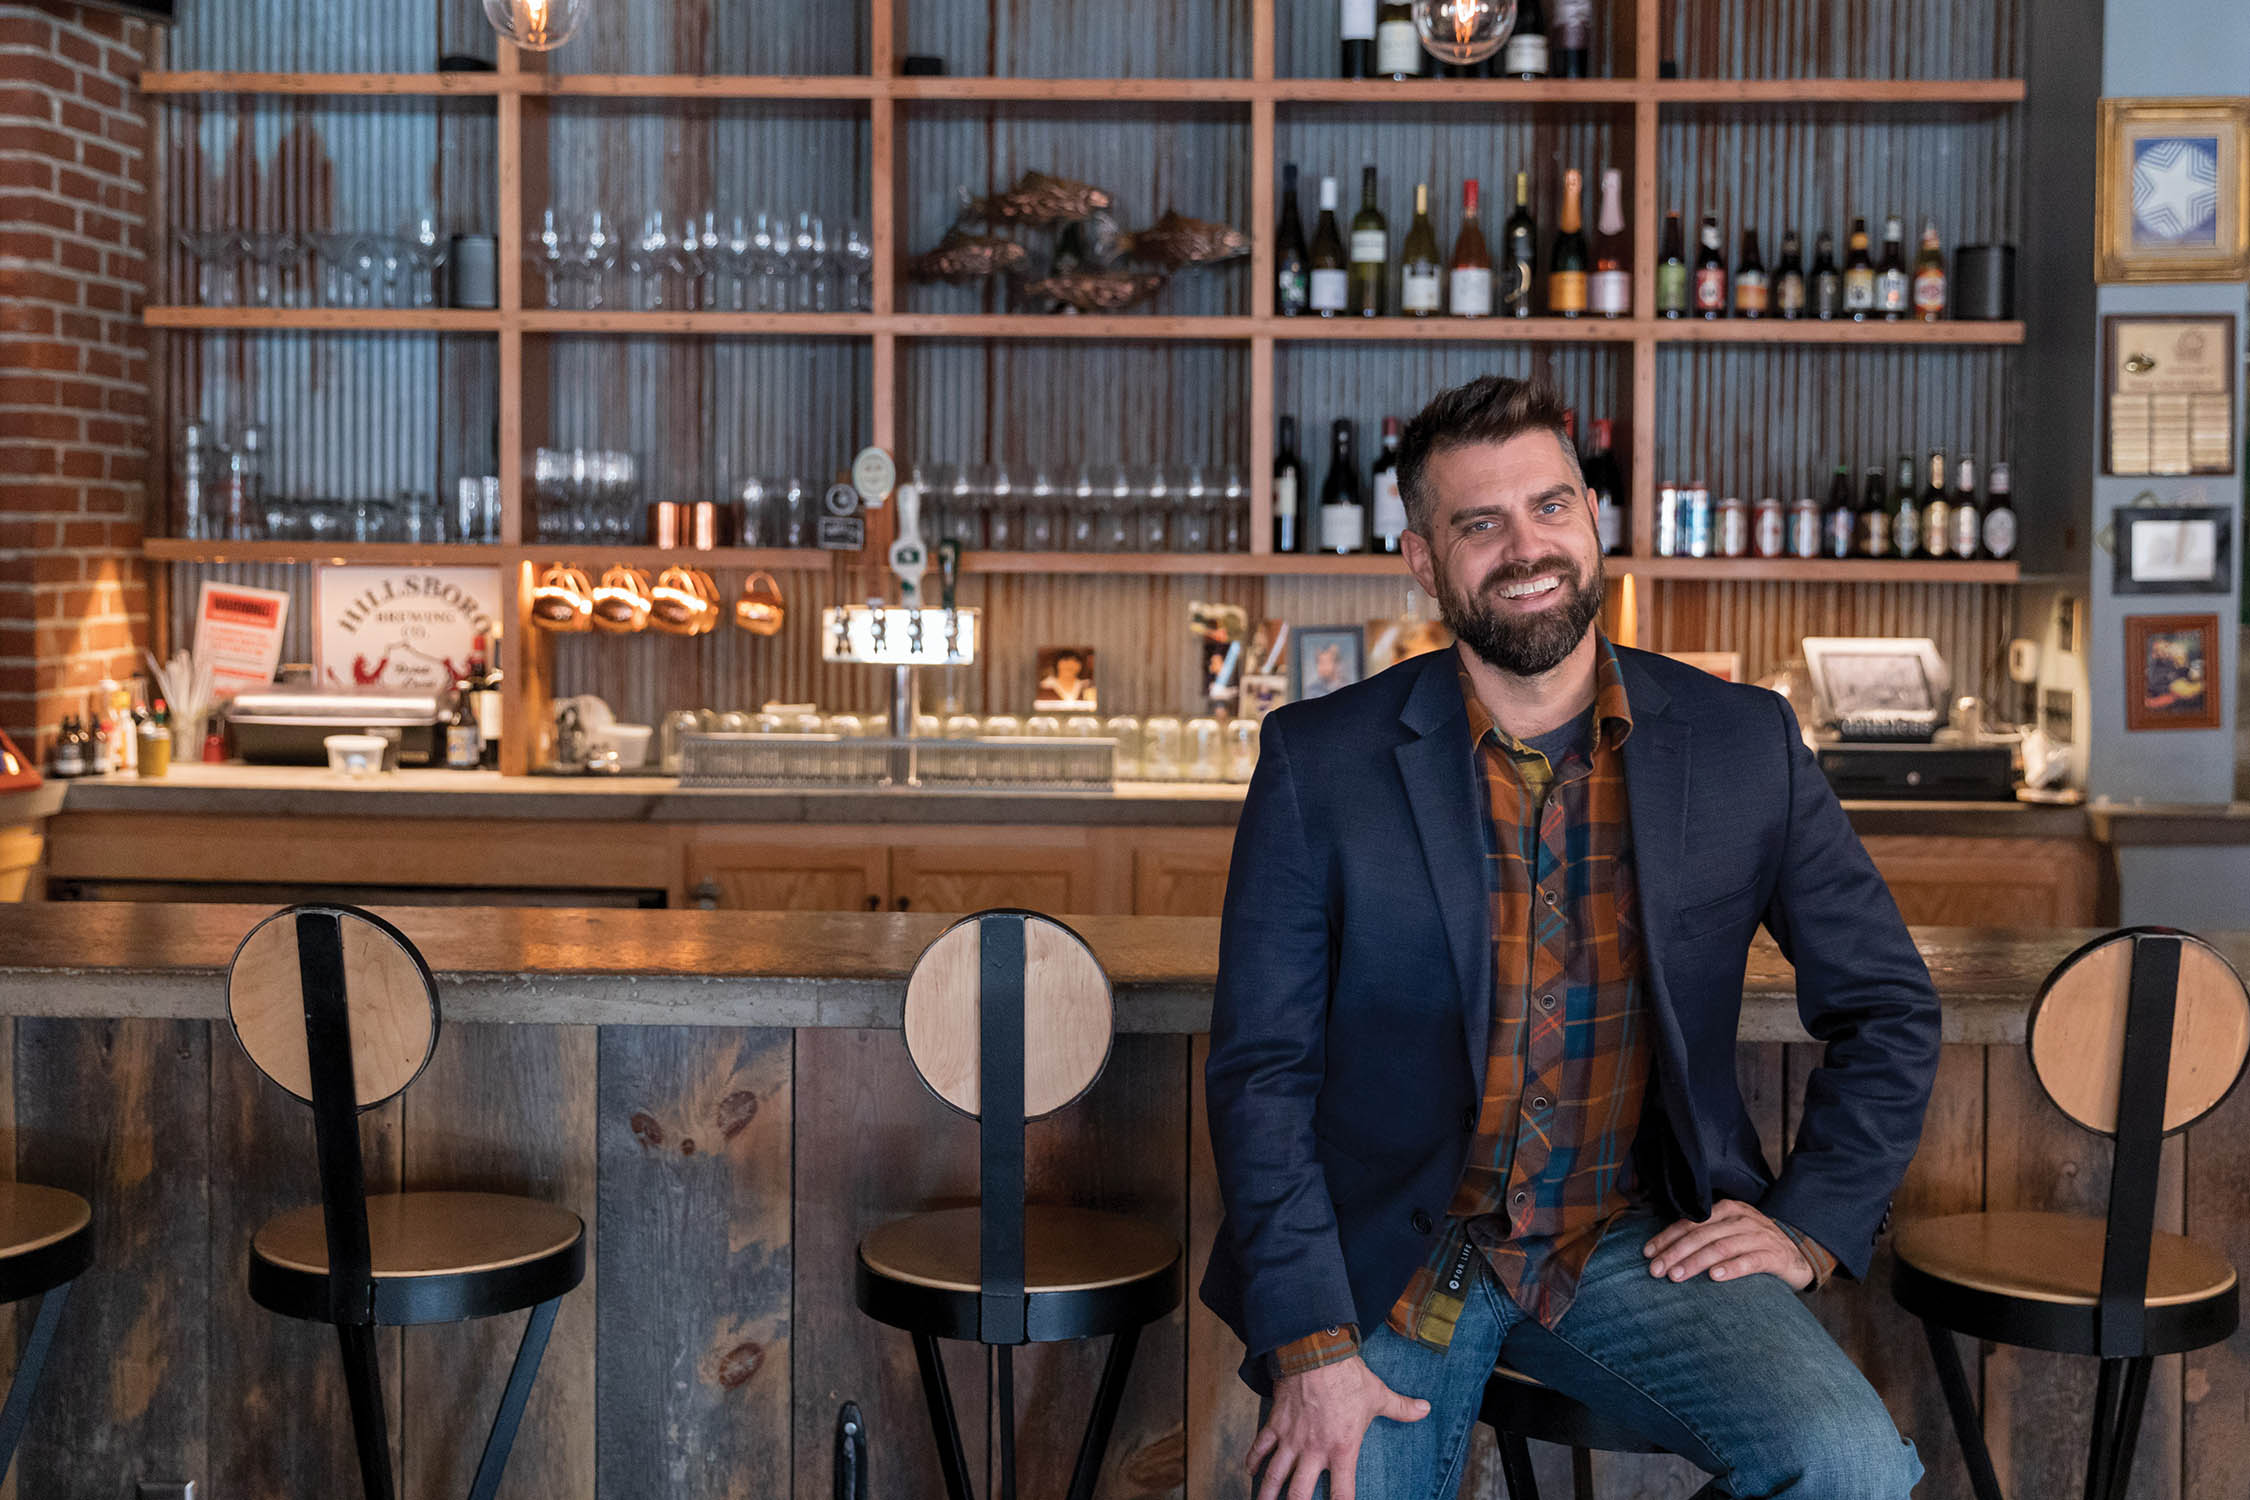 Luke Zahm sits at the bar in his restaurant, Driftless Cafe.